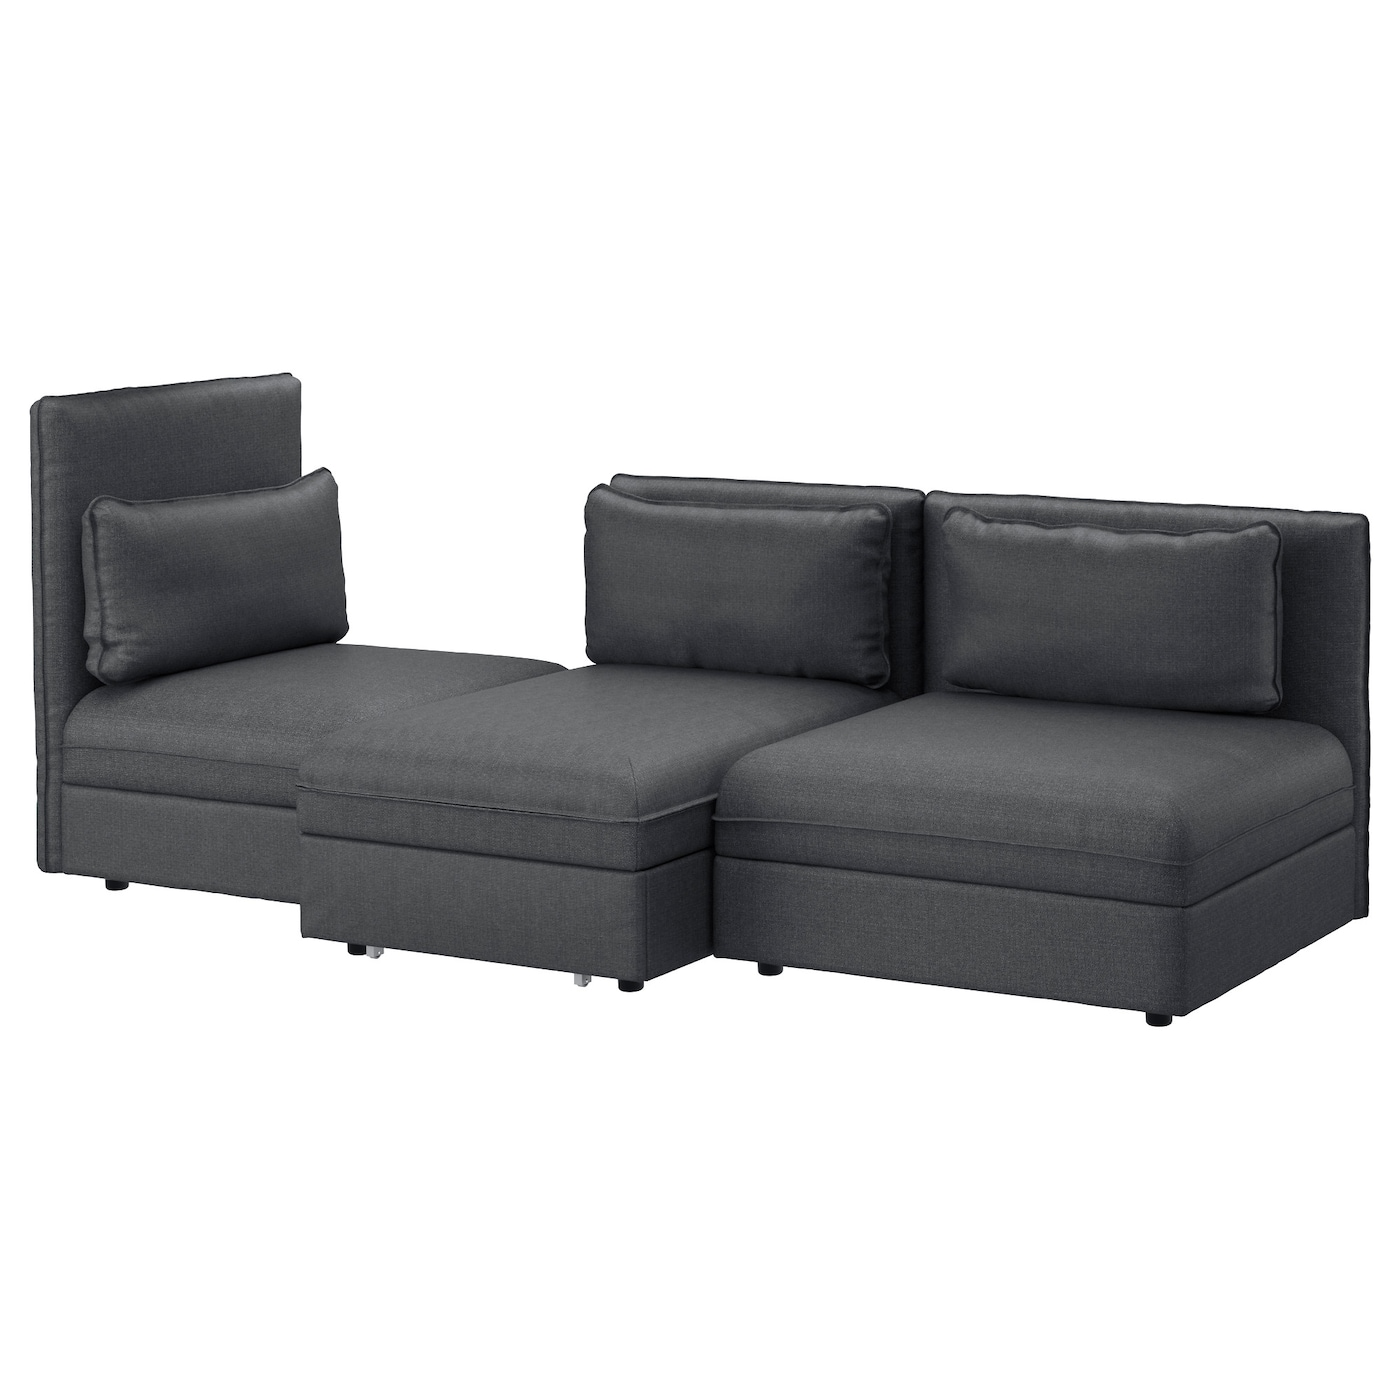 Ikea Vallentuna 3 Seat Sofa With Bed